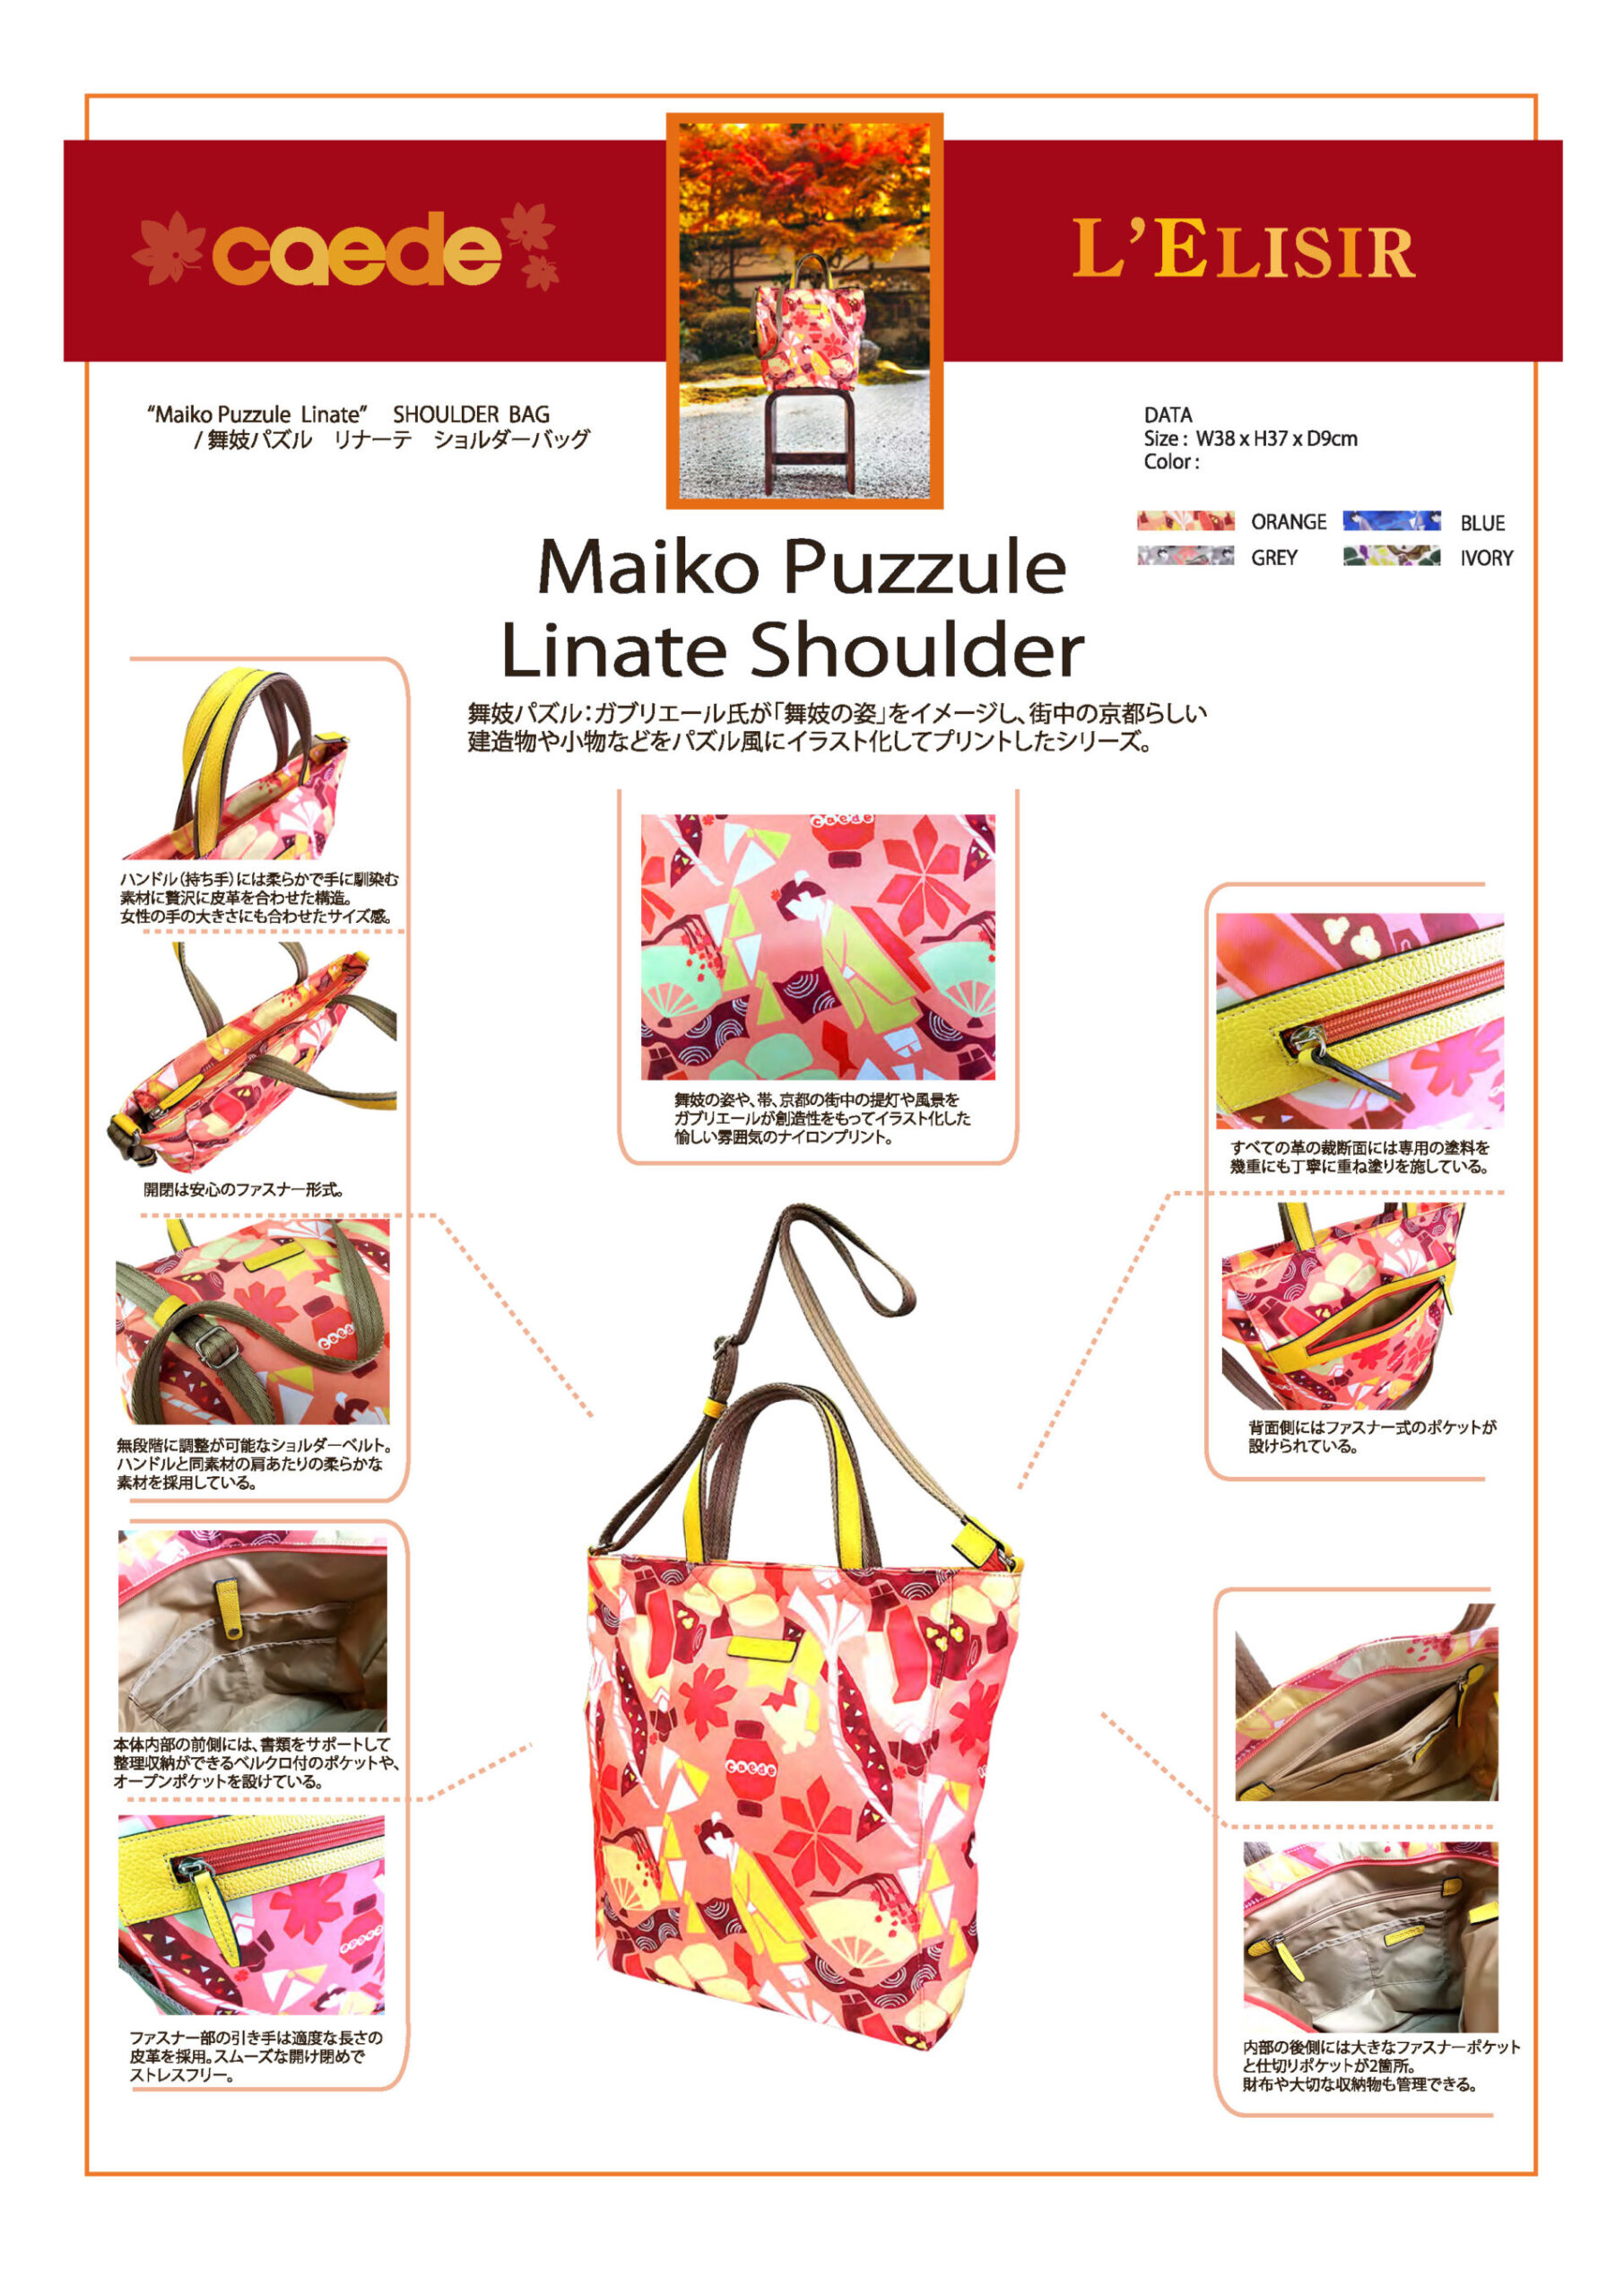 Maiko Puzzle Linate Shoulder orange